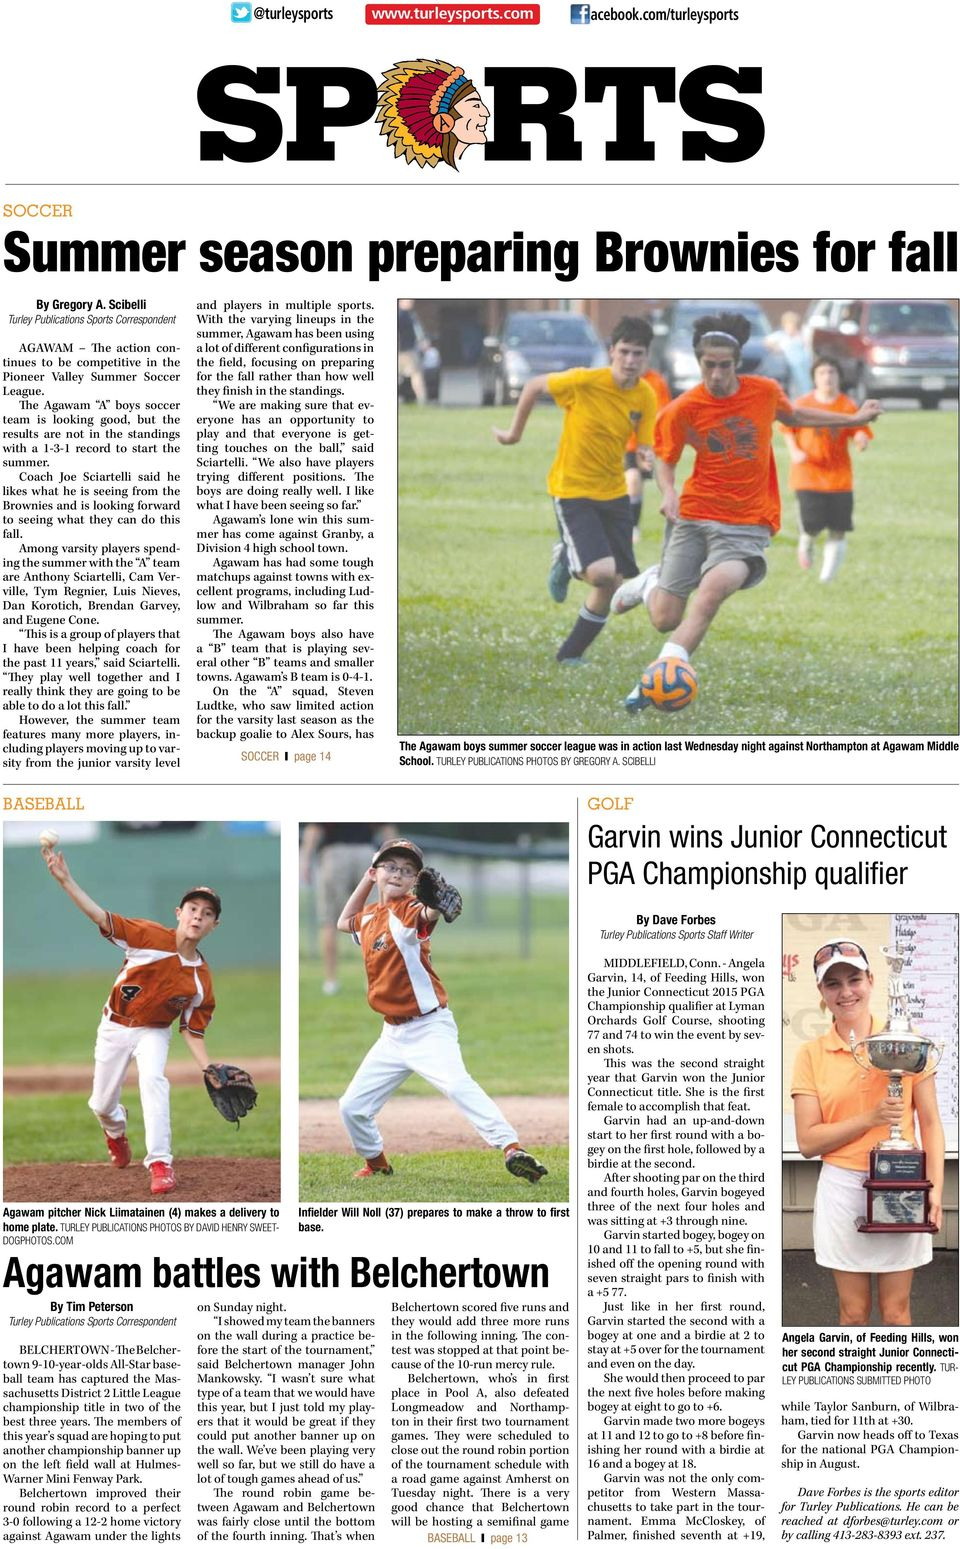 The Agawam A boys soccer team is looking good, but the results are not in